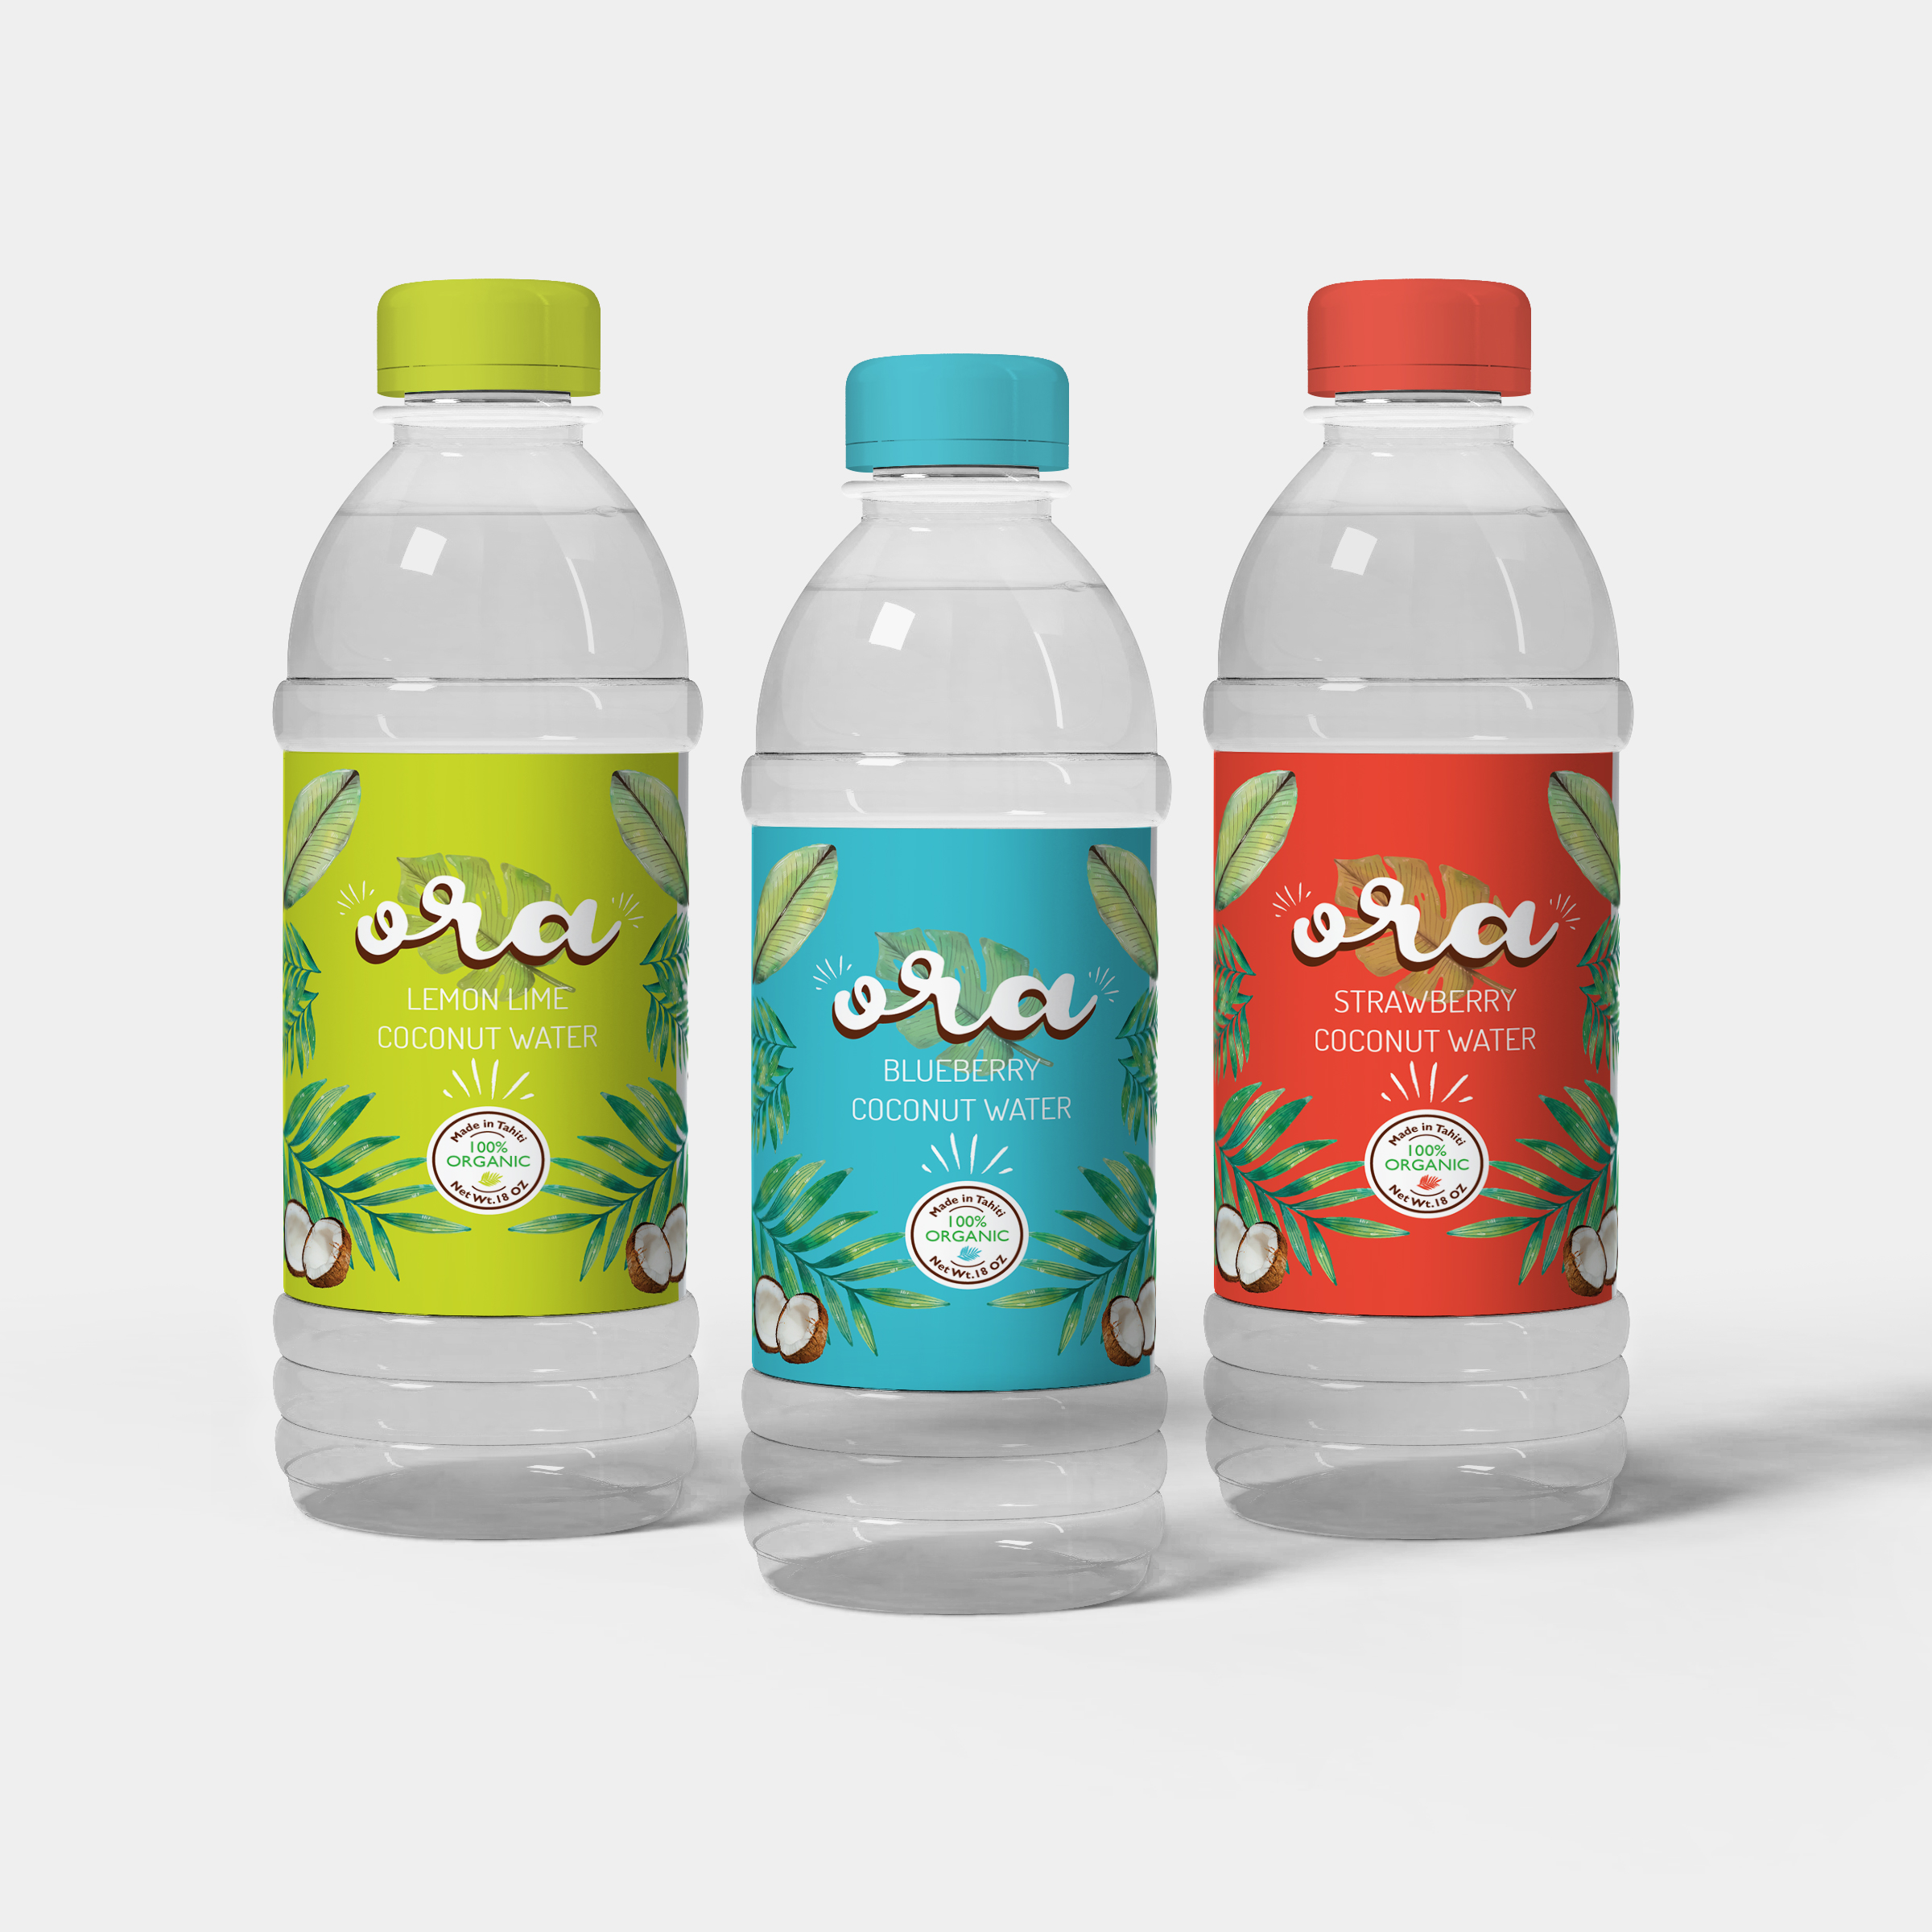 Ora Coconut Water - Ora Coconut Water is a brand of coconut water made in Tahiti and inspired by Tahitian culture. The word Ora means to be alive in Tahitian and this coconut water is designed to feel clean and fresh to symbolize good healthiness. Using a collage style of design, enhances the freshness of the product and makes it more appetizing.